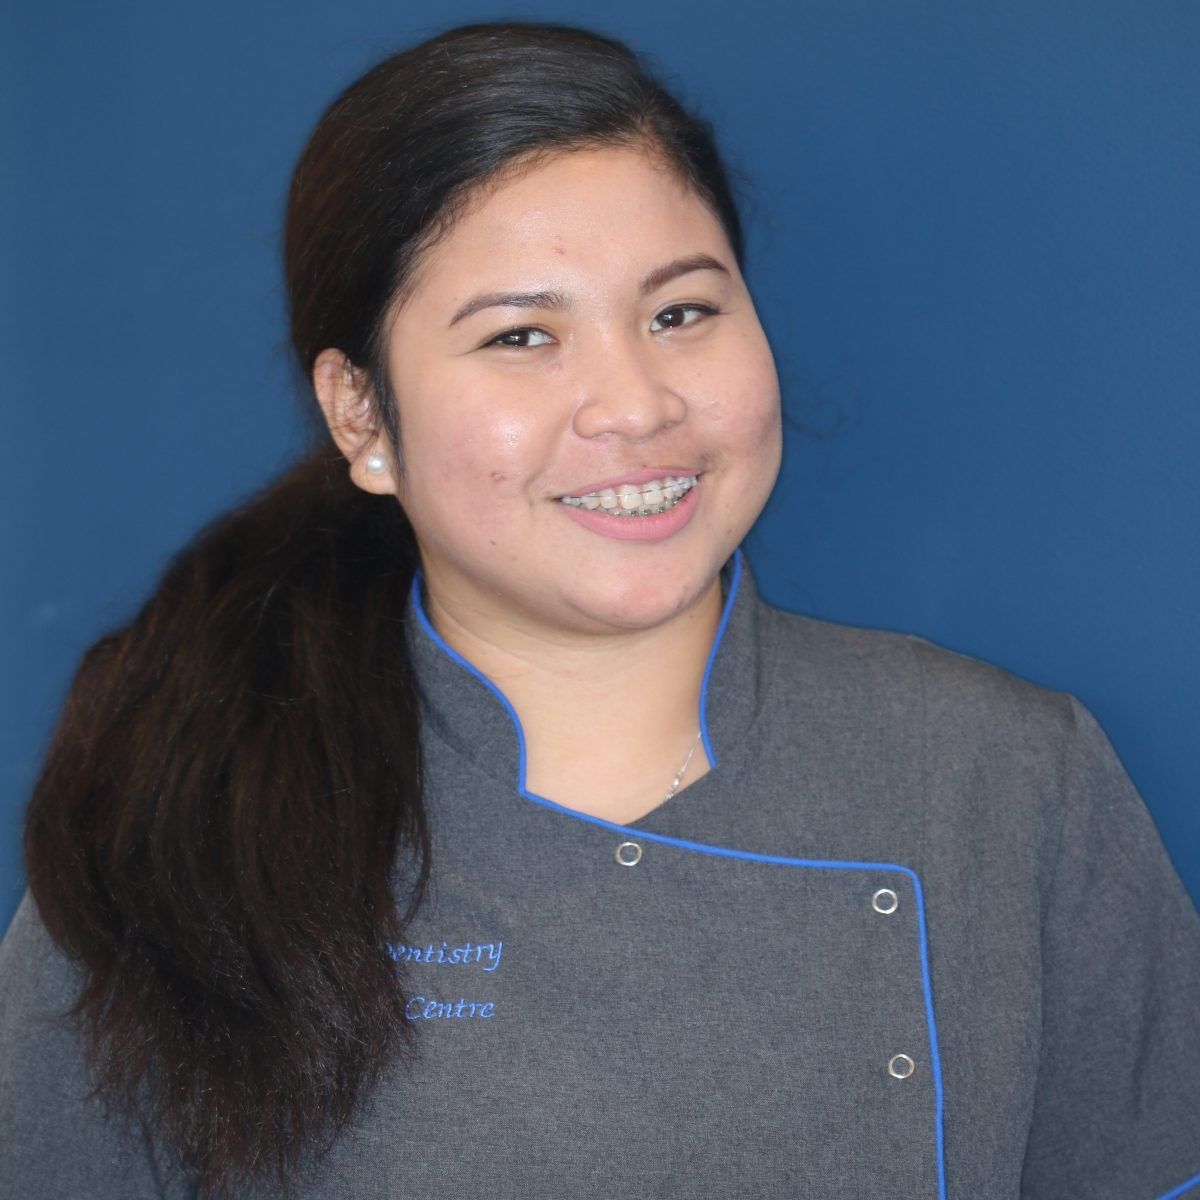 charmaine-rodriguez- Our Team